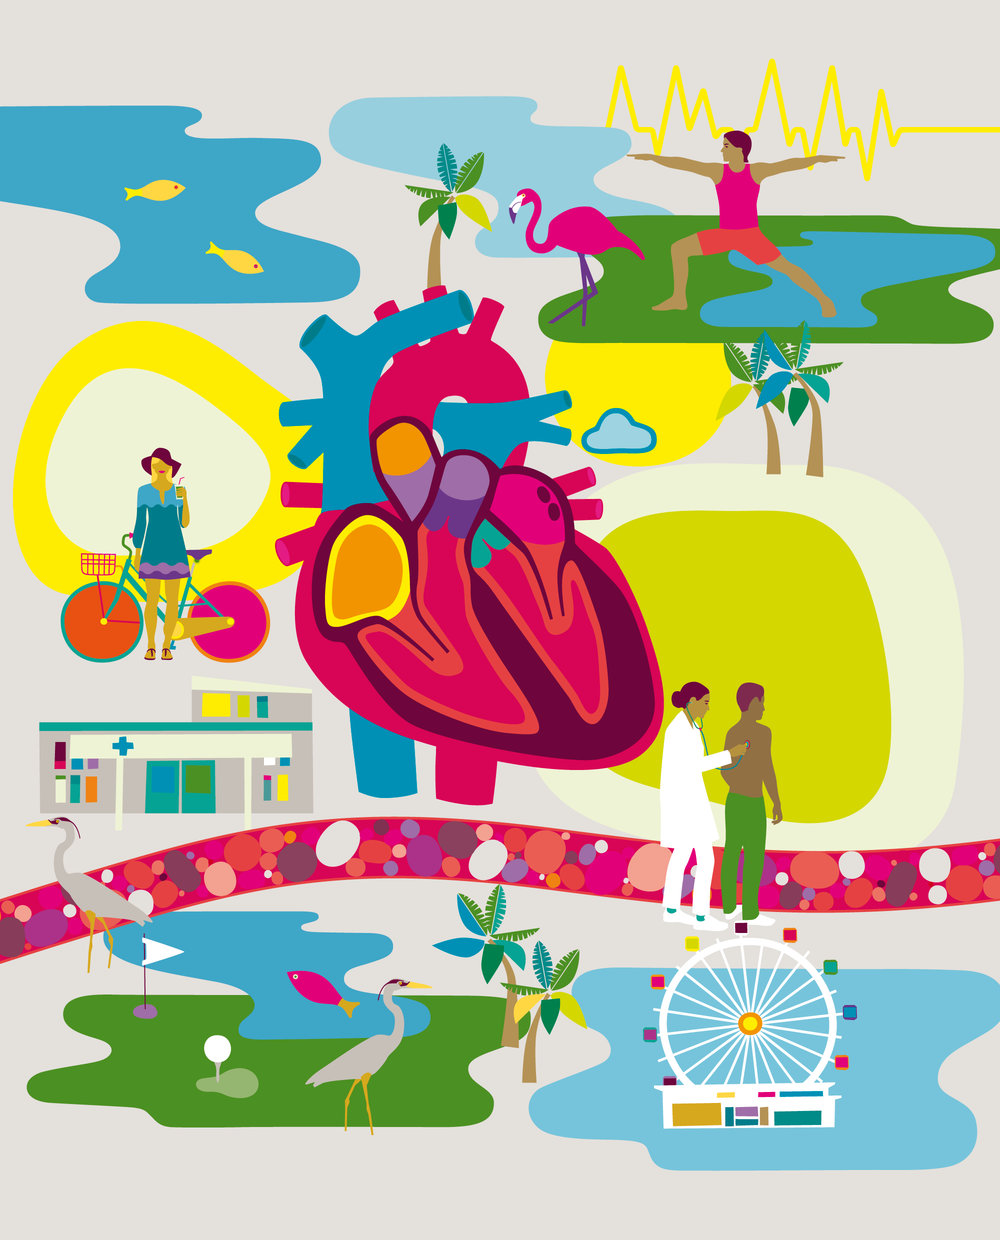 ACC |American College of Cardiology